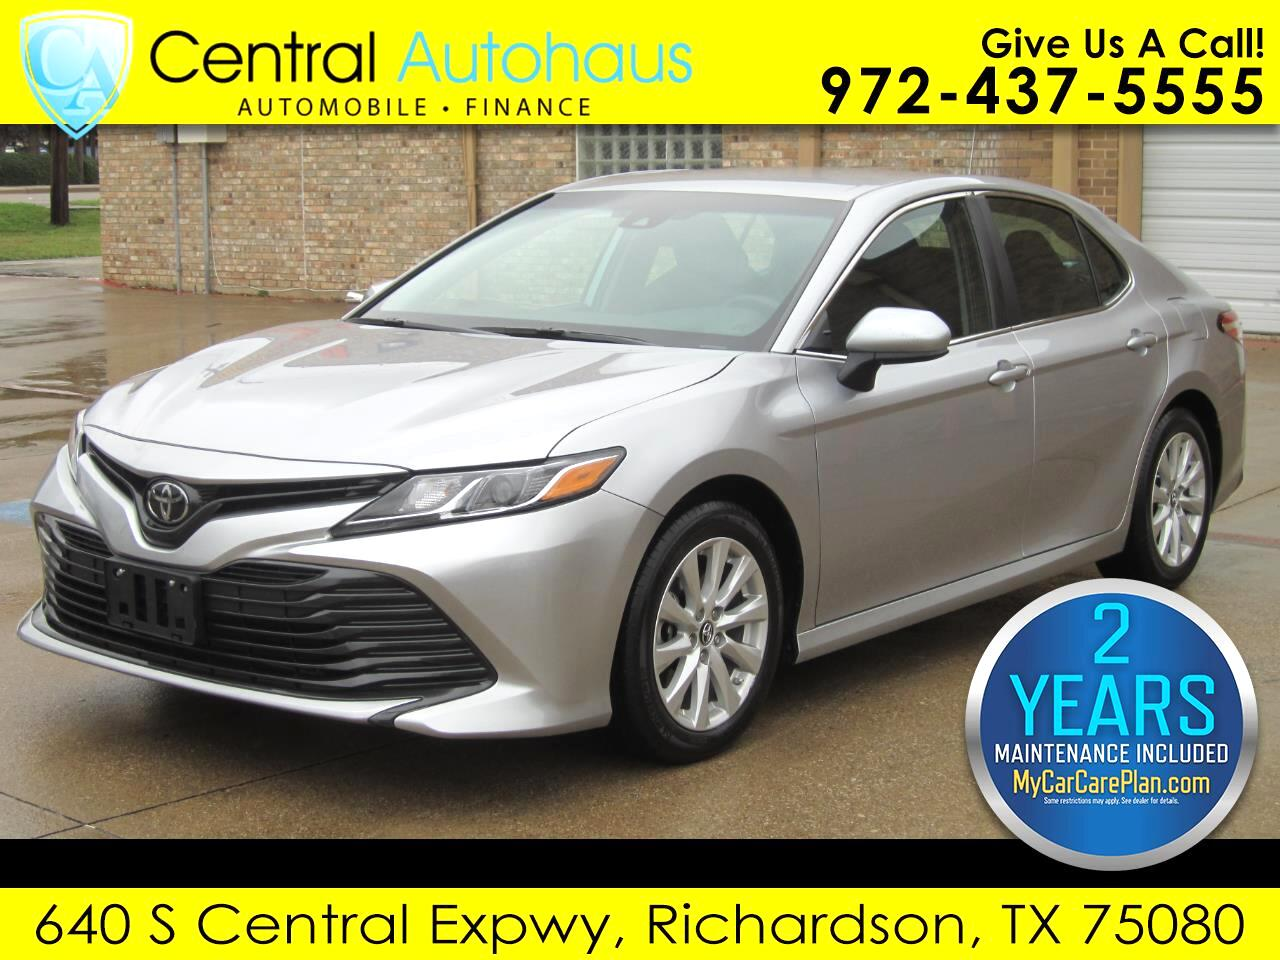 2018 Toyota Camry 4dr Sdn LE Auto (Natl)